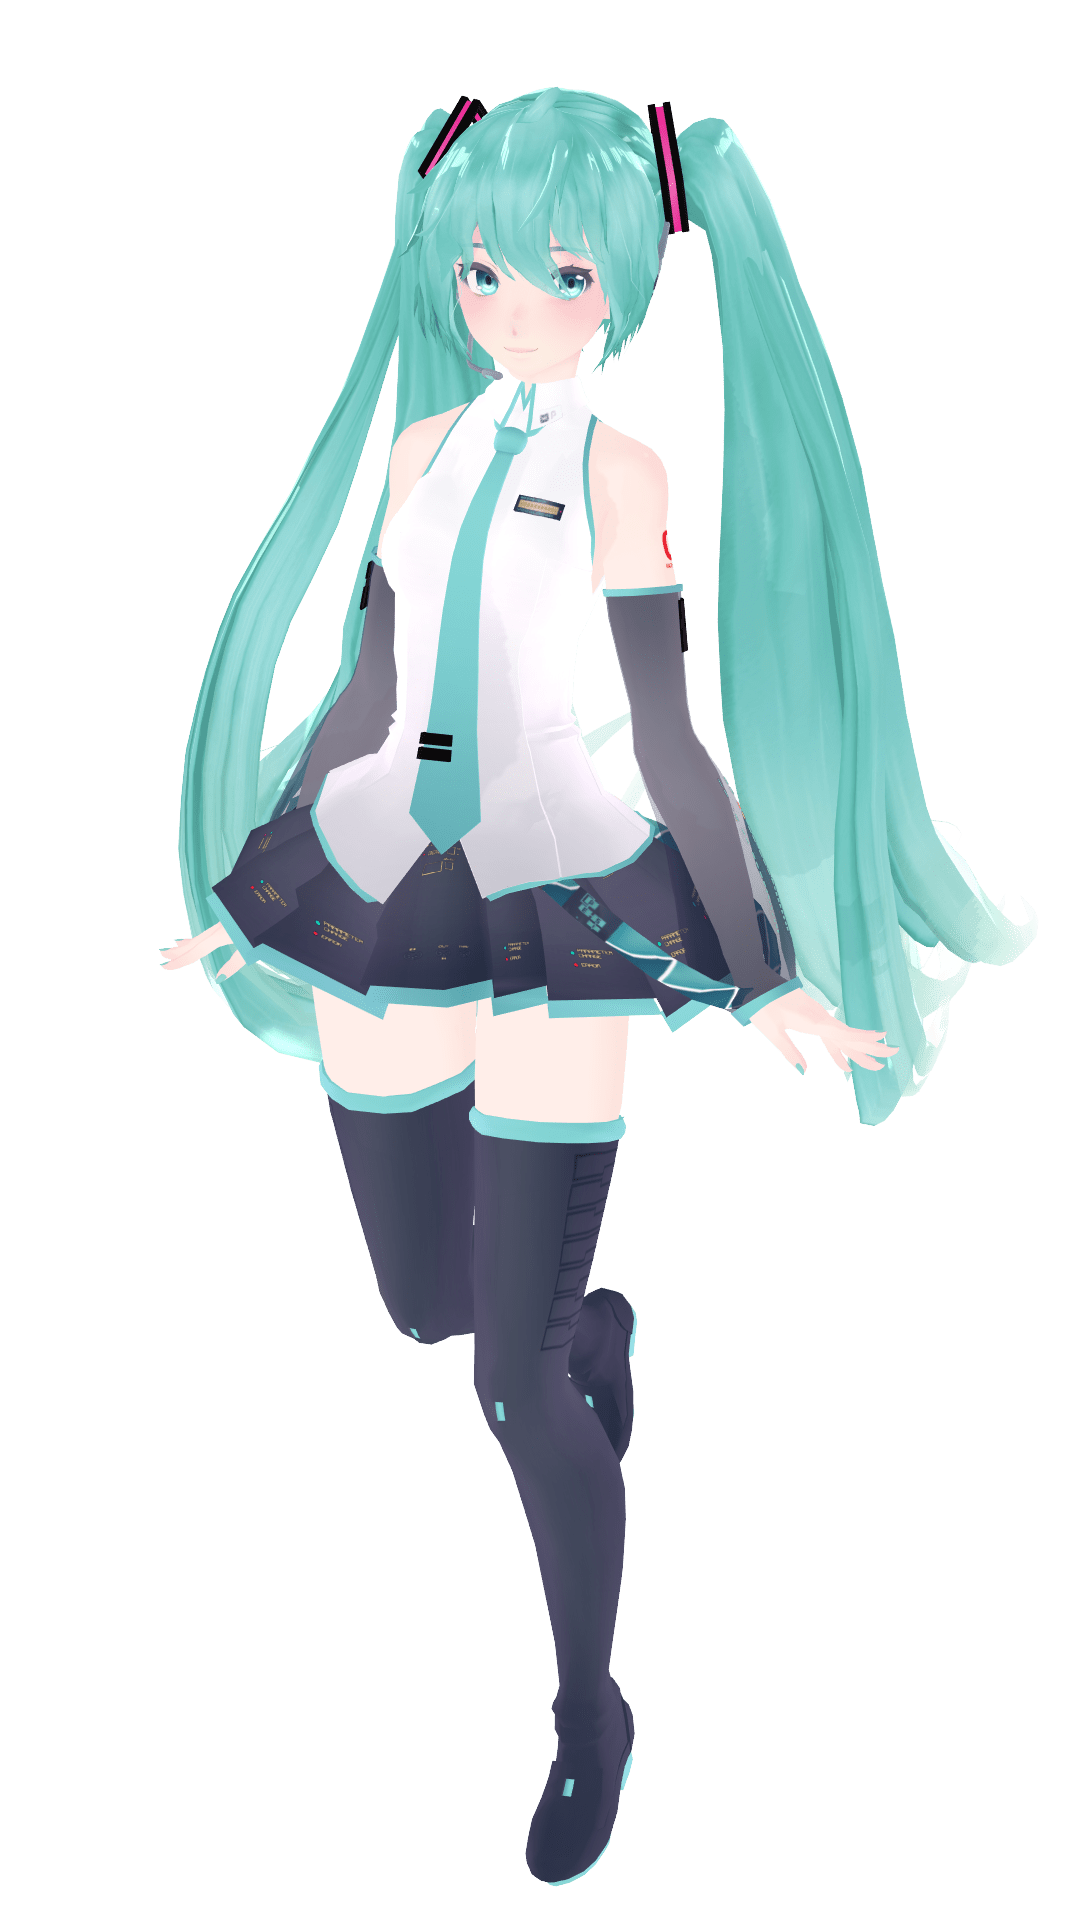 Wallpaper Love You Girl Mmd Dl Miku V3 Pose By Supericecreamyum On Deviantart